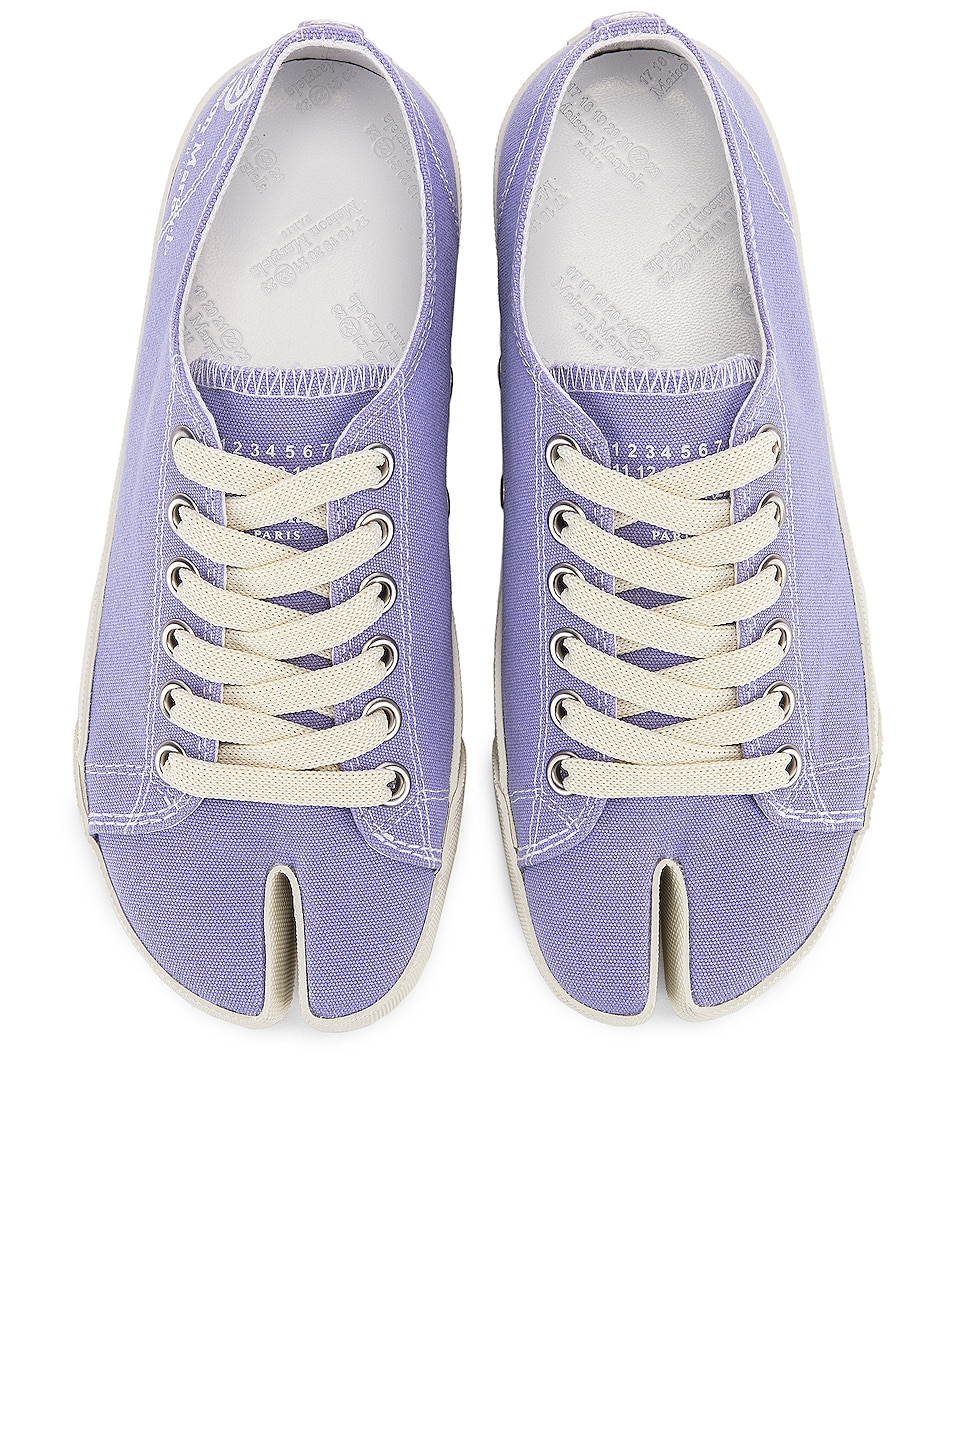 Image 1 of Maison Margiela Tabi Low Top Canvas Sneakers in Thistle